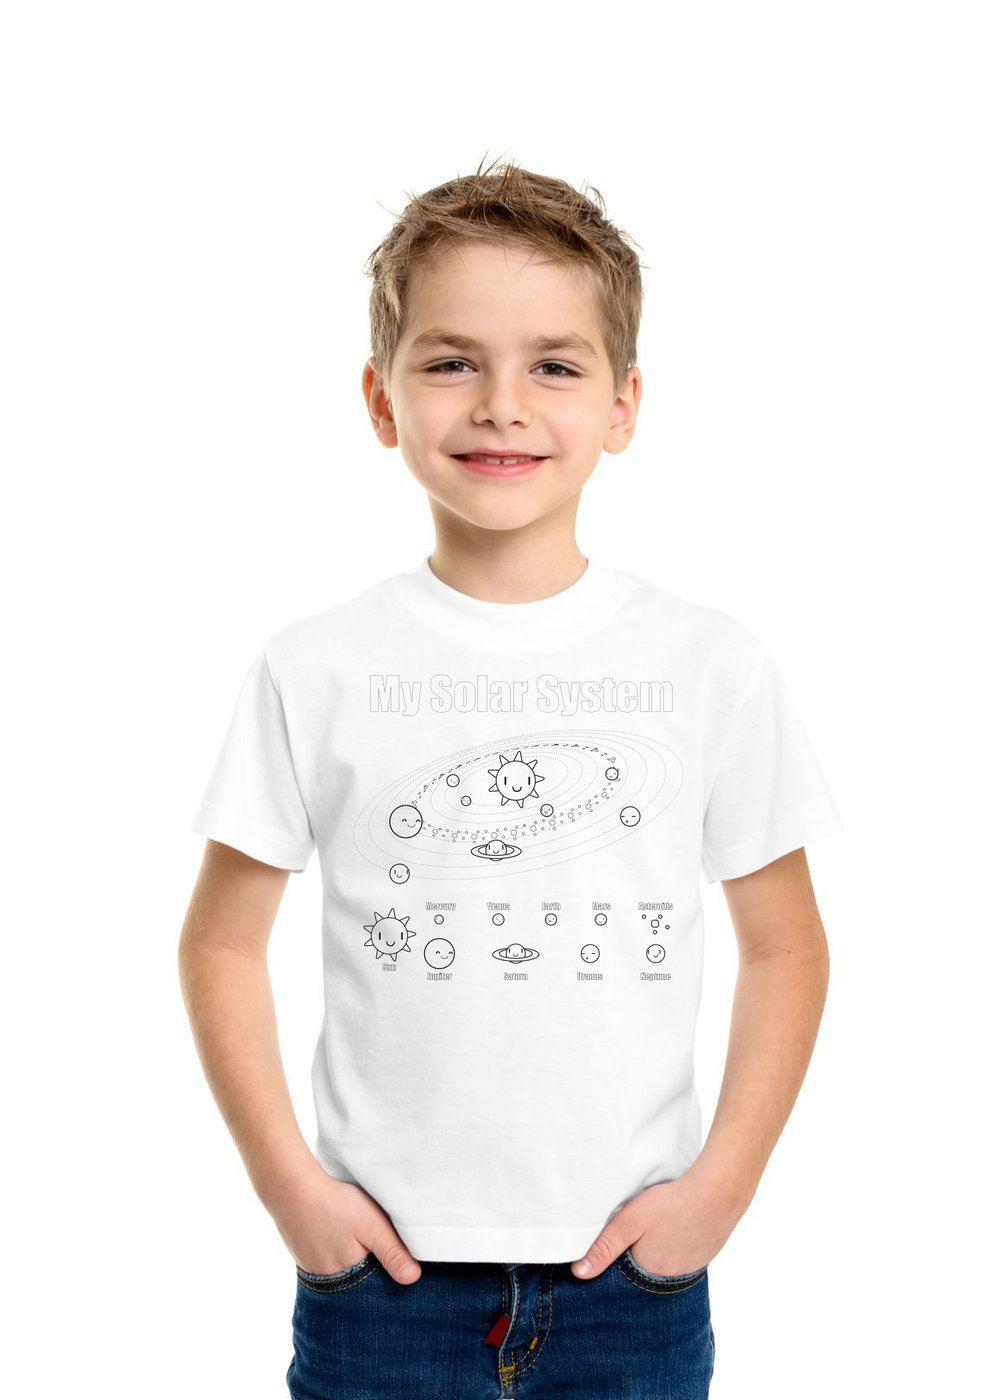 Why do we love to watch our kids learn and be creative?Because they enjoy it too! - Teetle tees are a wearable coloring page.We create a custom design to help kids learn.Let us know the theme of your activity and we'll create a custom design to help kids learn.Once that's ready we'll set up online ordering. Everyone in your group can get the size they need.The last, and most important part, have fun! We'll send the tee and enough markers for everyone.